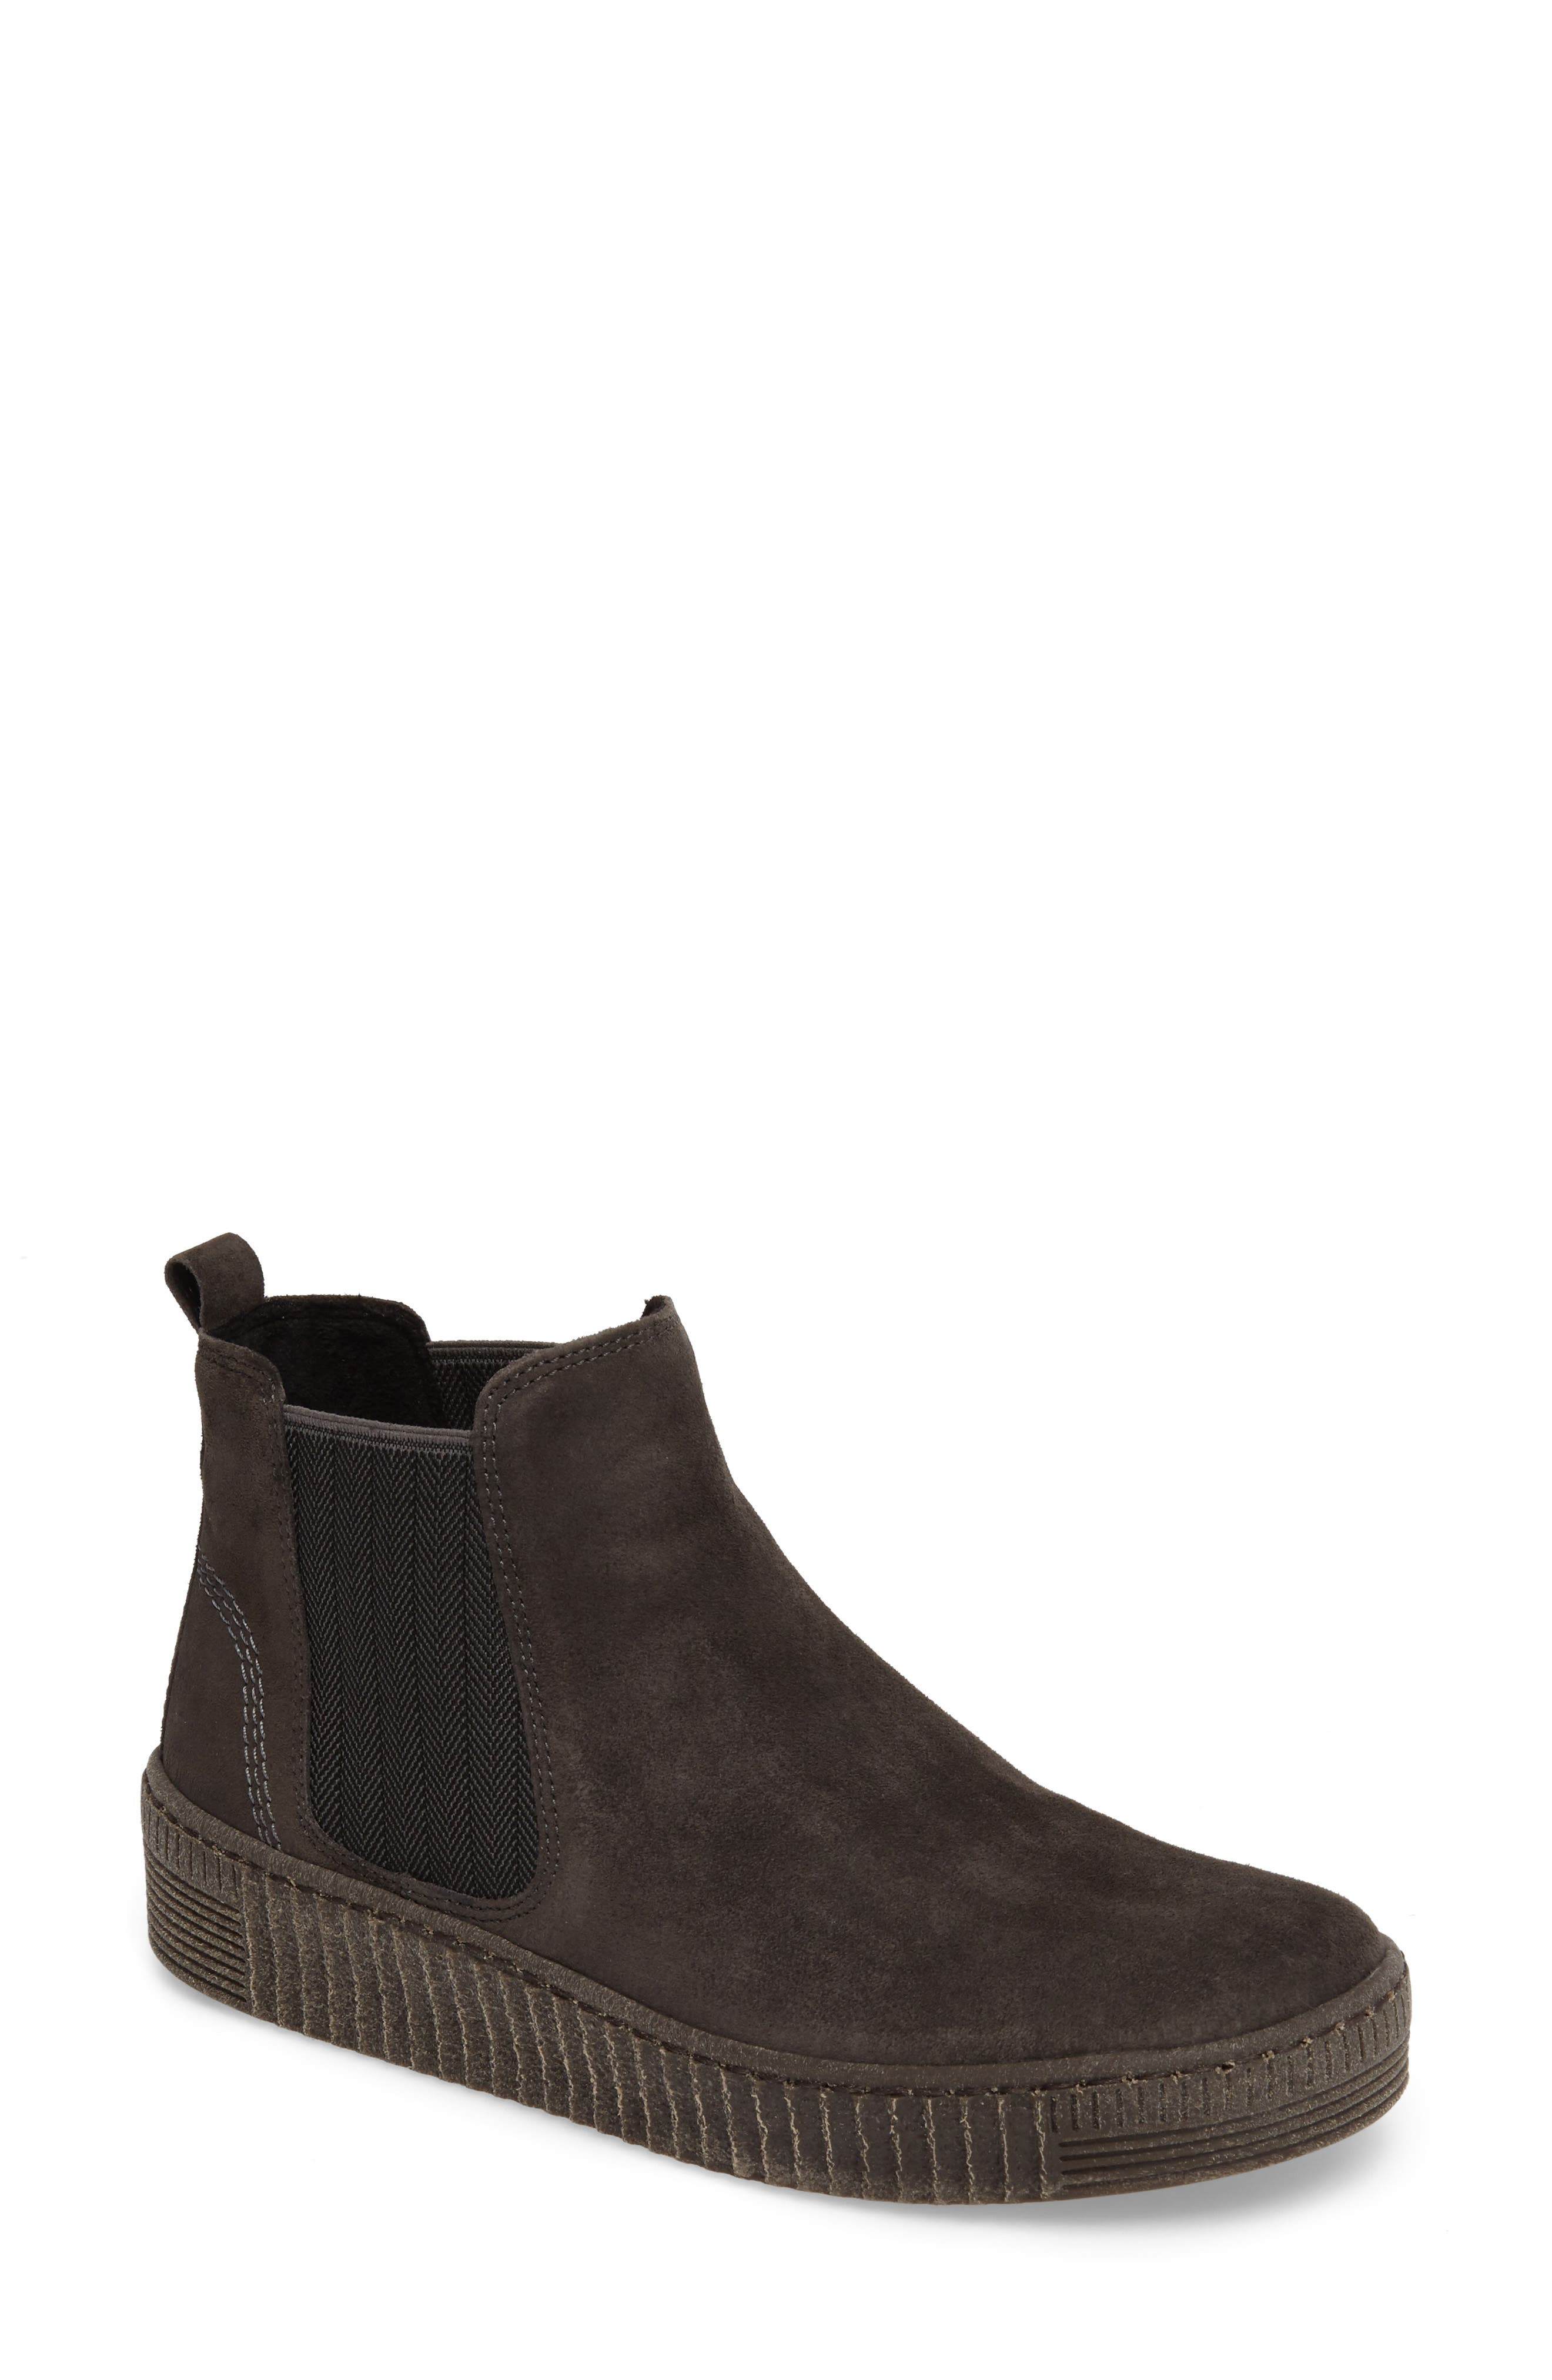 Gabor Flat Ankle Boot (Women)